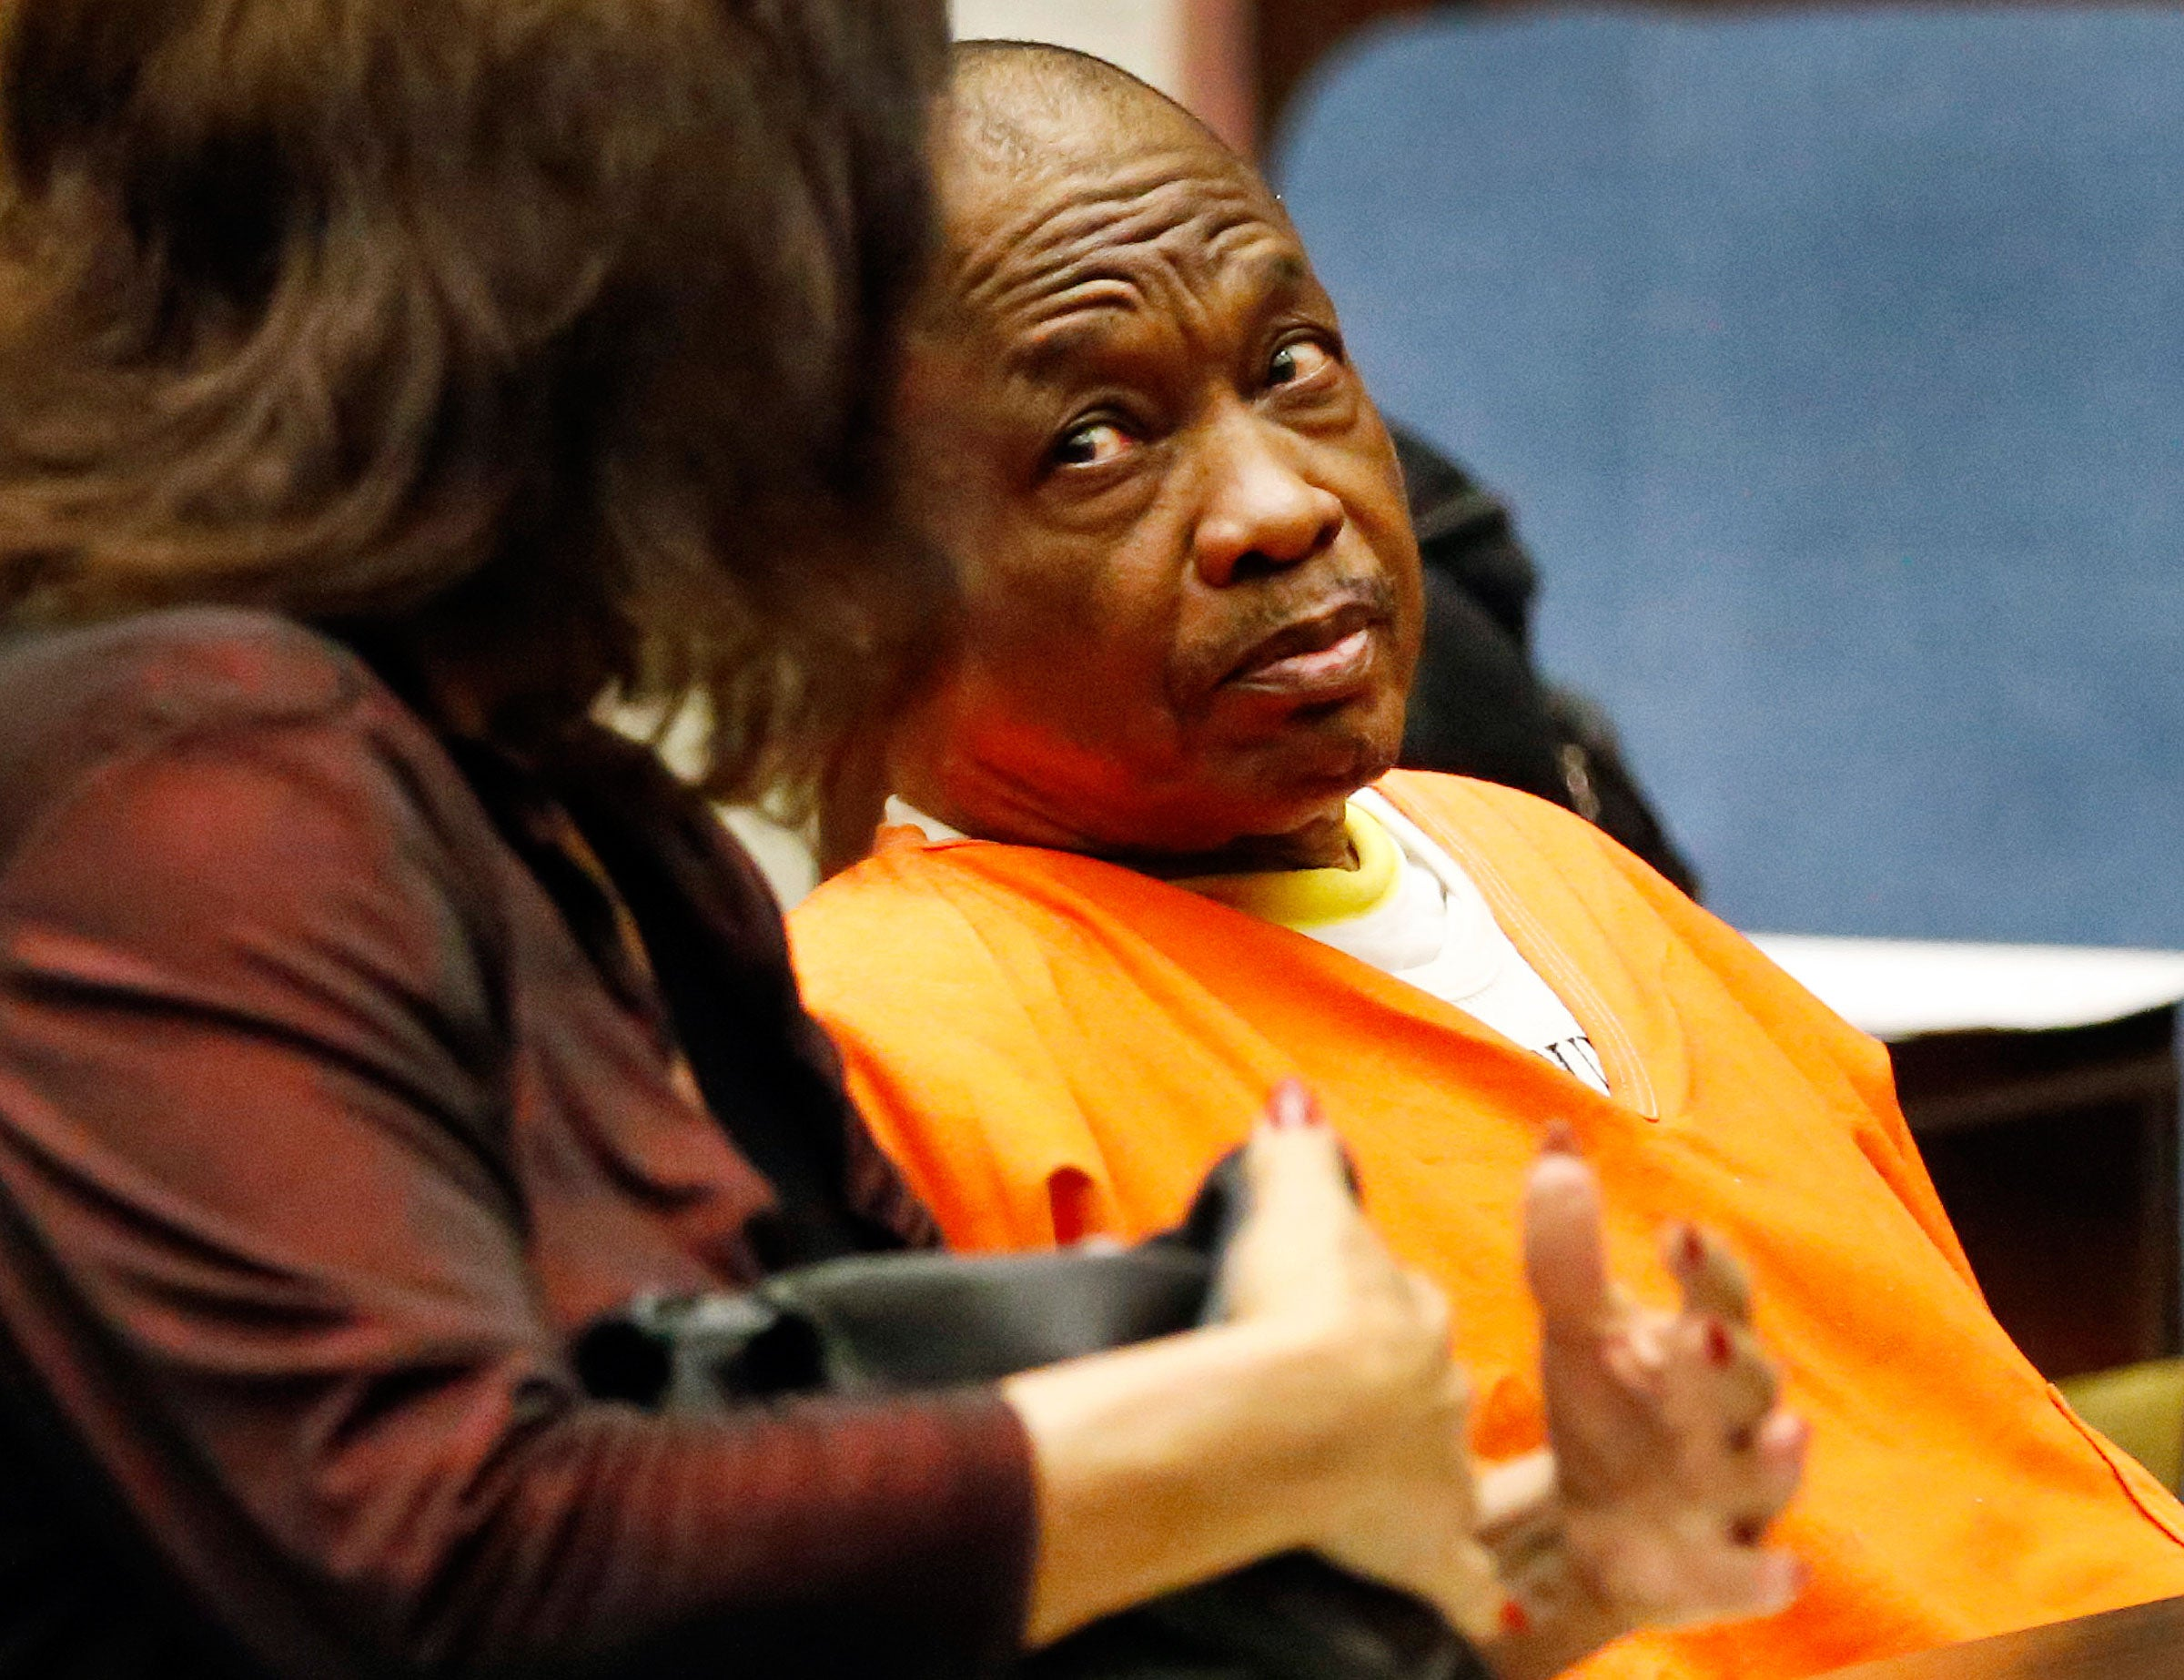 Jury Recommends L.A. Serial Killer 'The Grim Sleeper' Be Put to Death